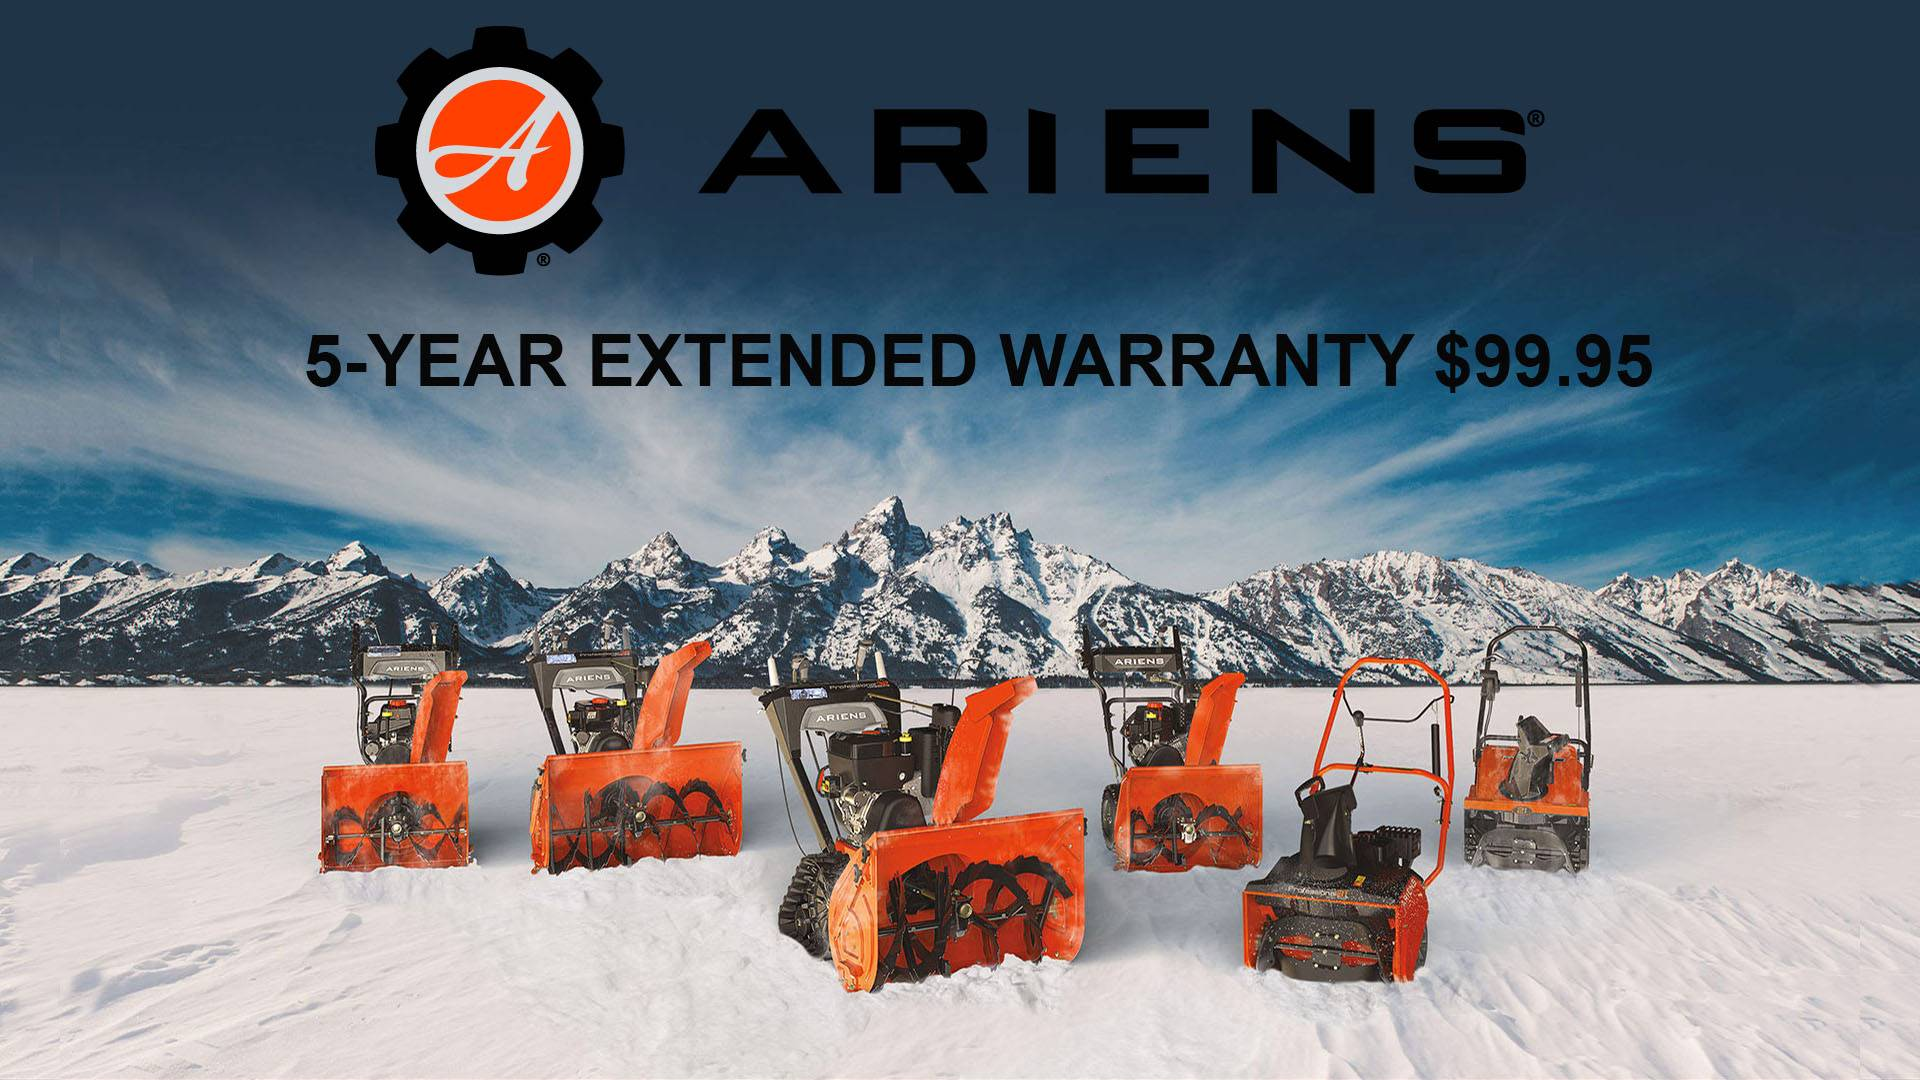 Ariens USA Ariens -5-Year Extended Warranty $99.95